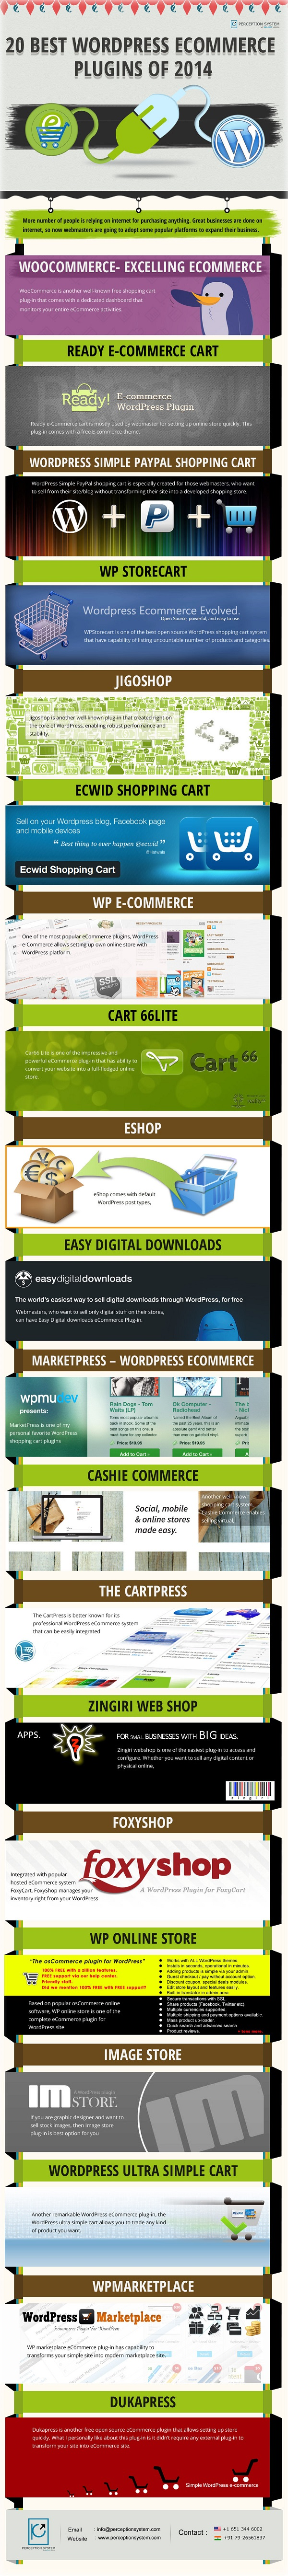 infografia 20 plugins ercio electronico WP e merce